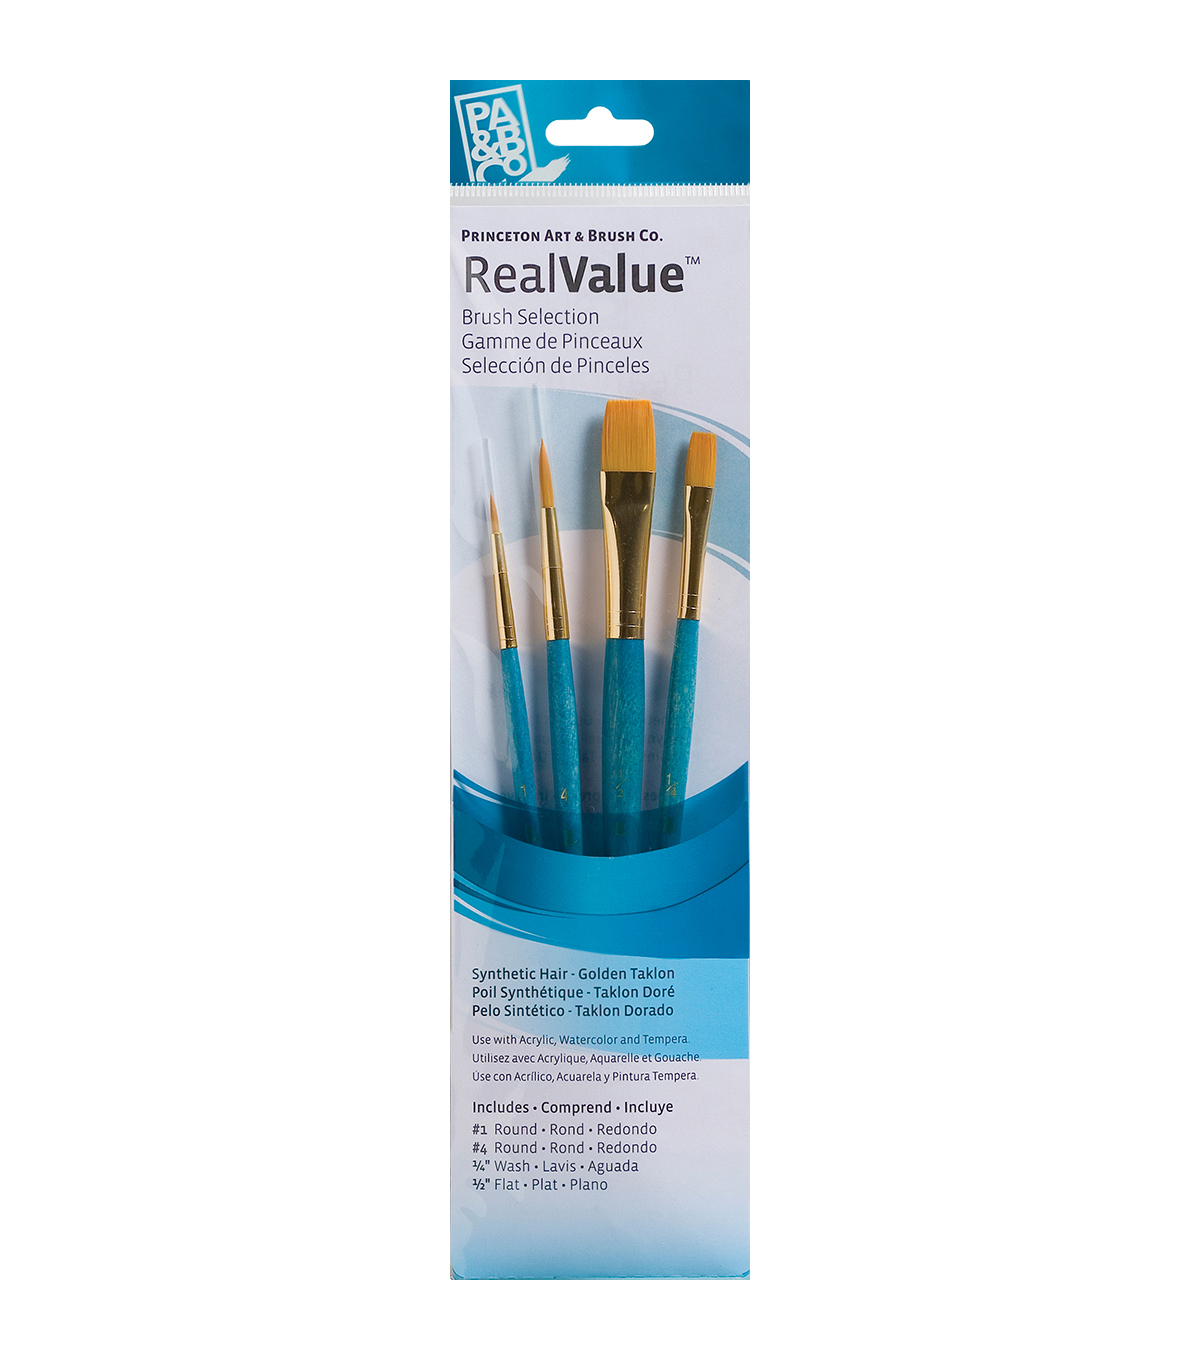 Real Value Brush Set Synthetic Gold Taklon-Round 1,4, Wash 1/4, Flat 1/2